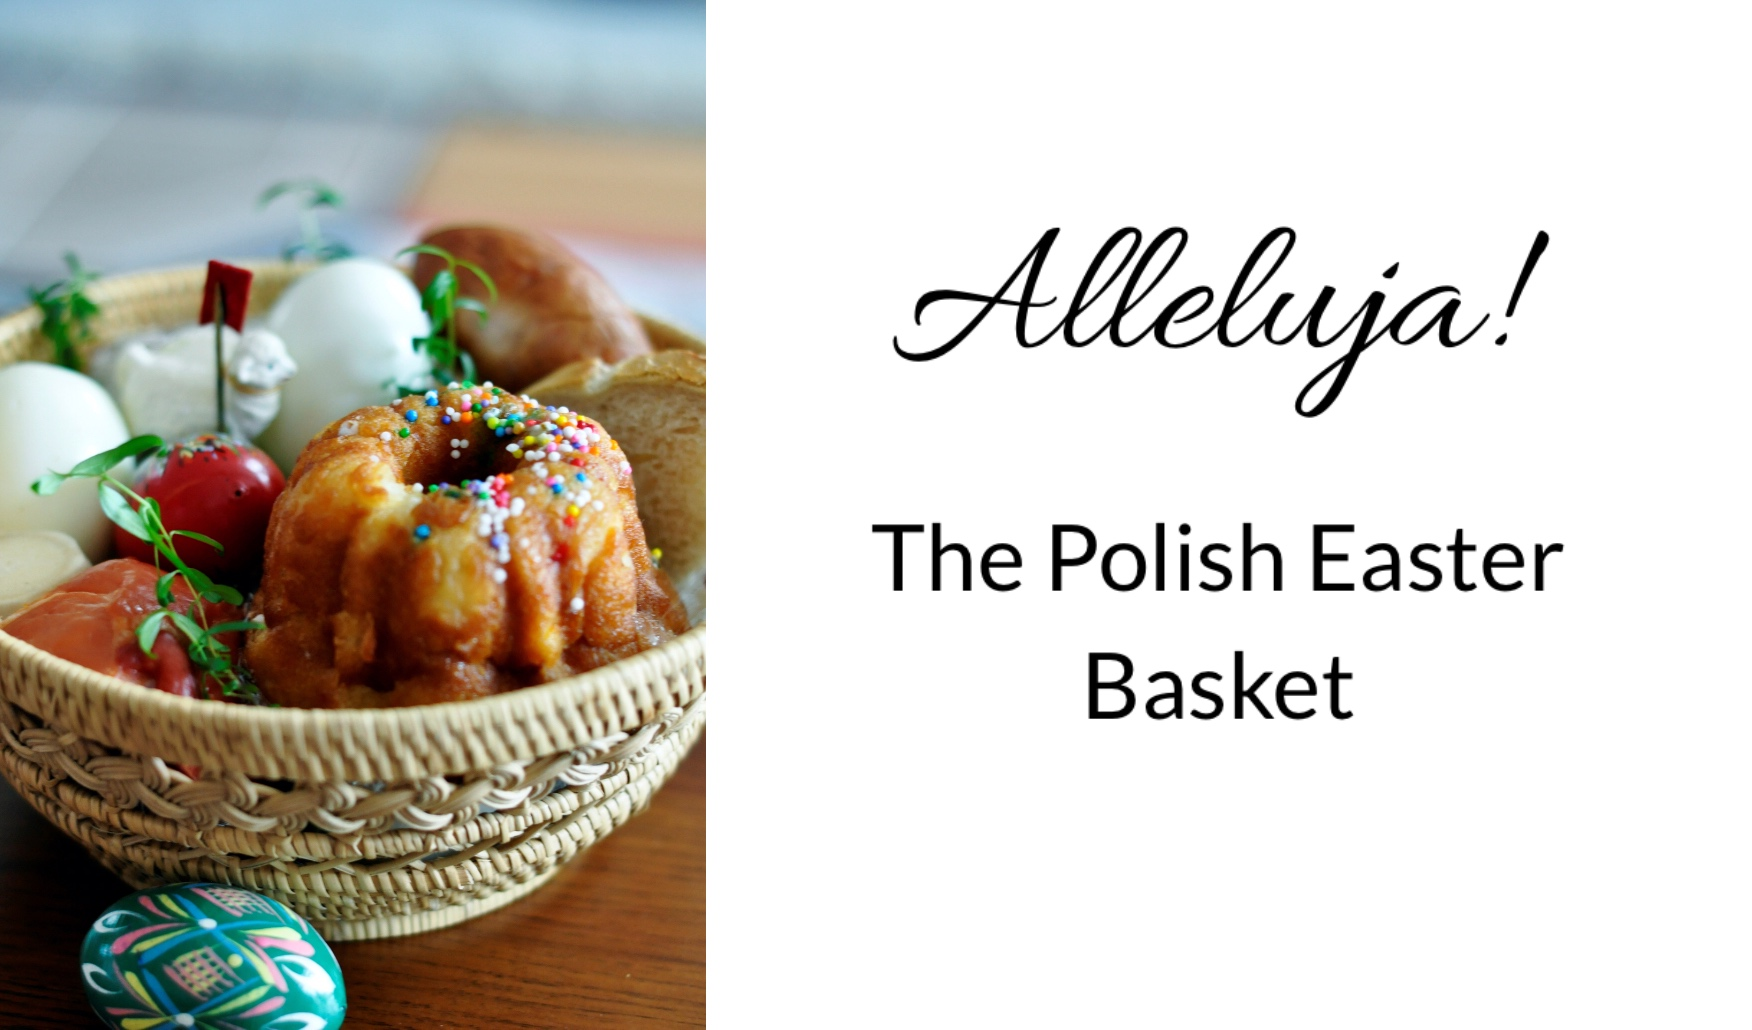 Polish Easter Basket contents